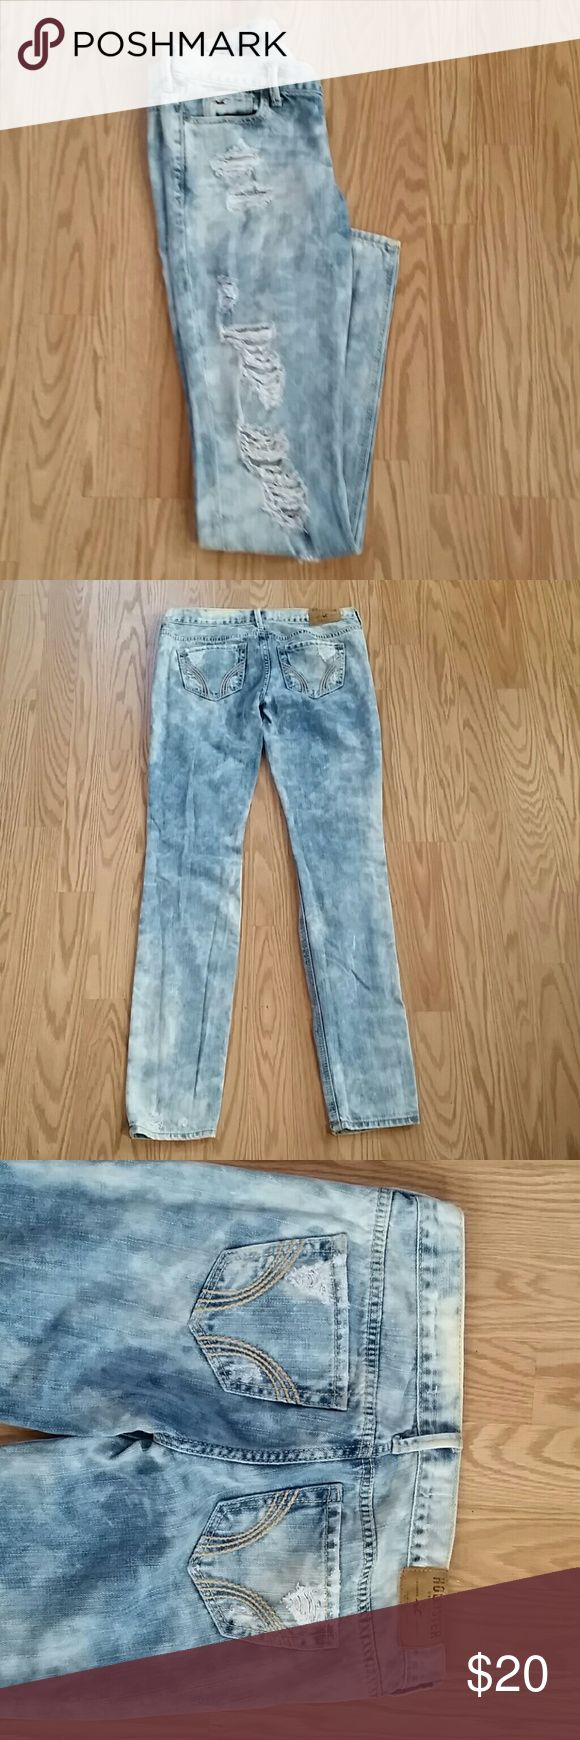 """Hollister Skinny Acid Washed Jeans SZ 25 Hollister  Size 25 waist  Light acid wash with ripped effect on the front.  Low rise skinny fit. Soft 100%  cotton denim.  Pre-owned.  Nice condition.  Durable denim. No noticeable flaws. Worn twice.   MEASUREMENTS : Waist 25"""" Inseam 30""""- Rise 6"""" -Length 36"""".  FAST SHIPPING.  Contact with any questions.  Thank you for viewing. Hollister  Jeans Skinny"""